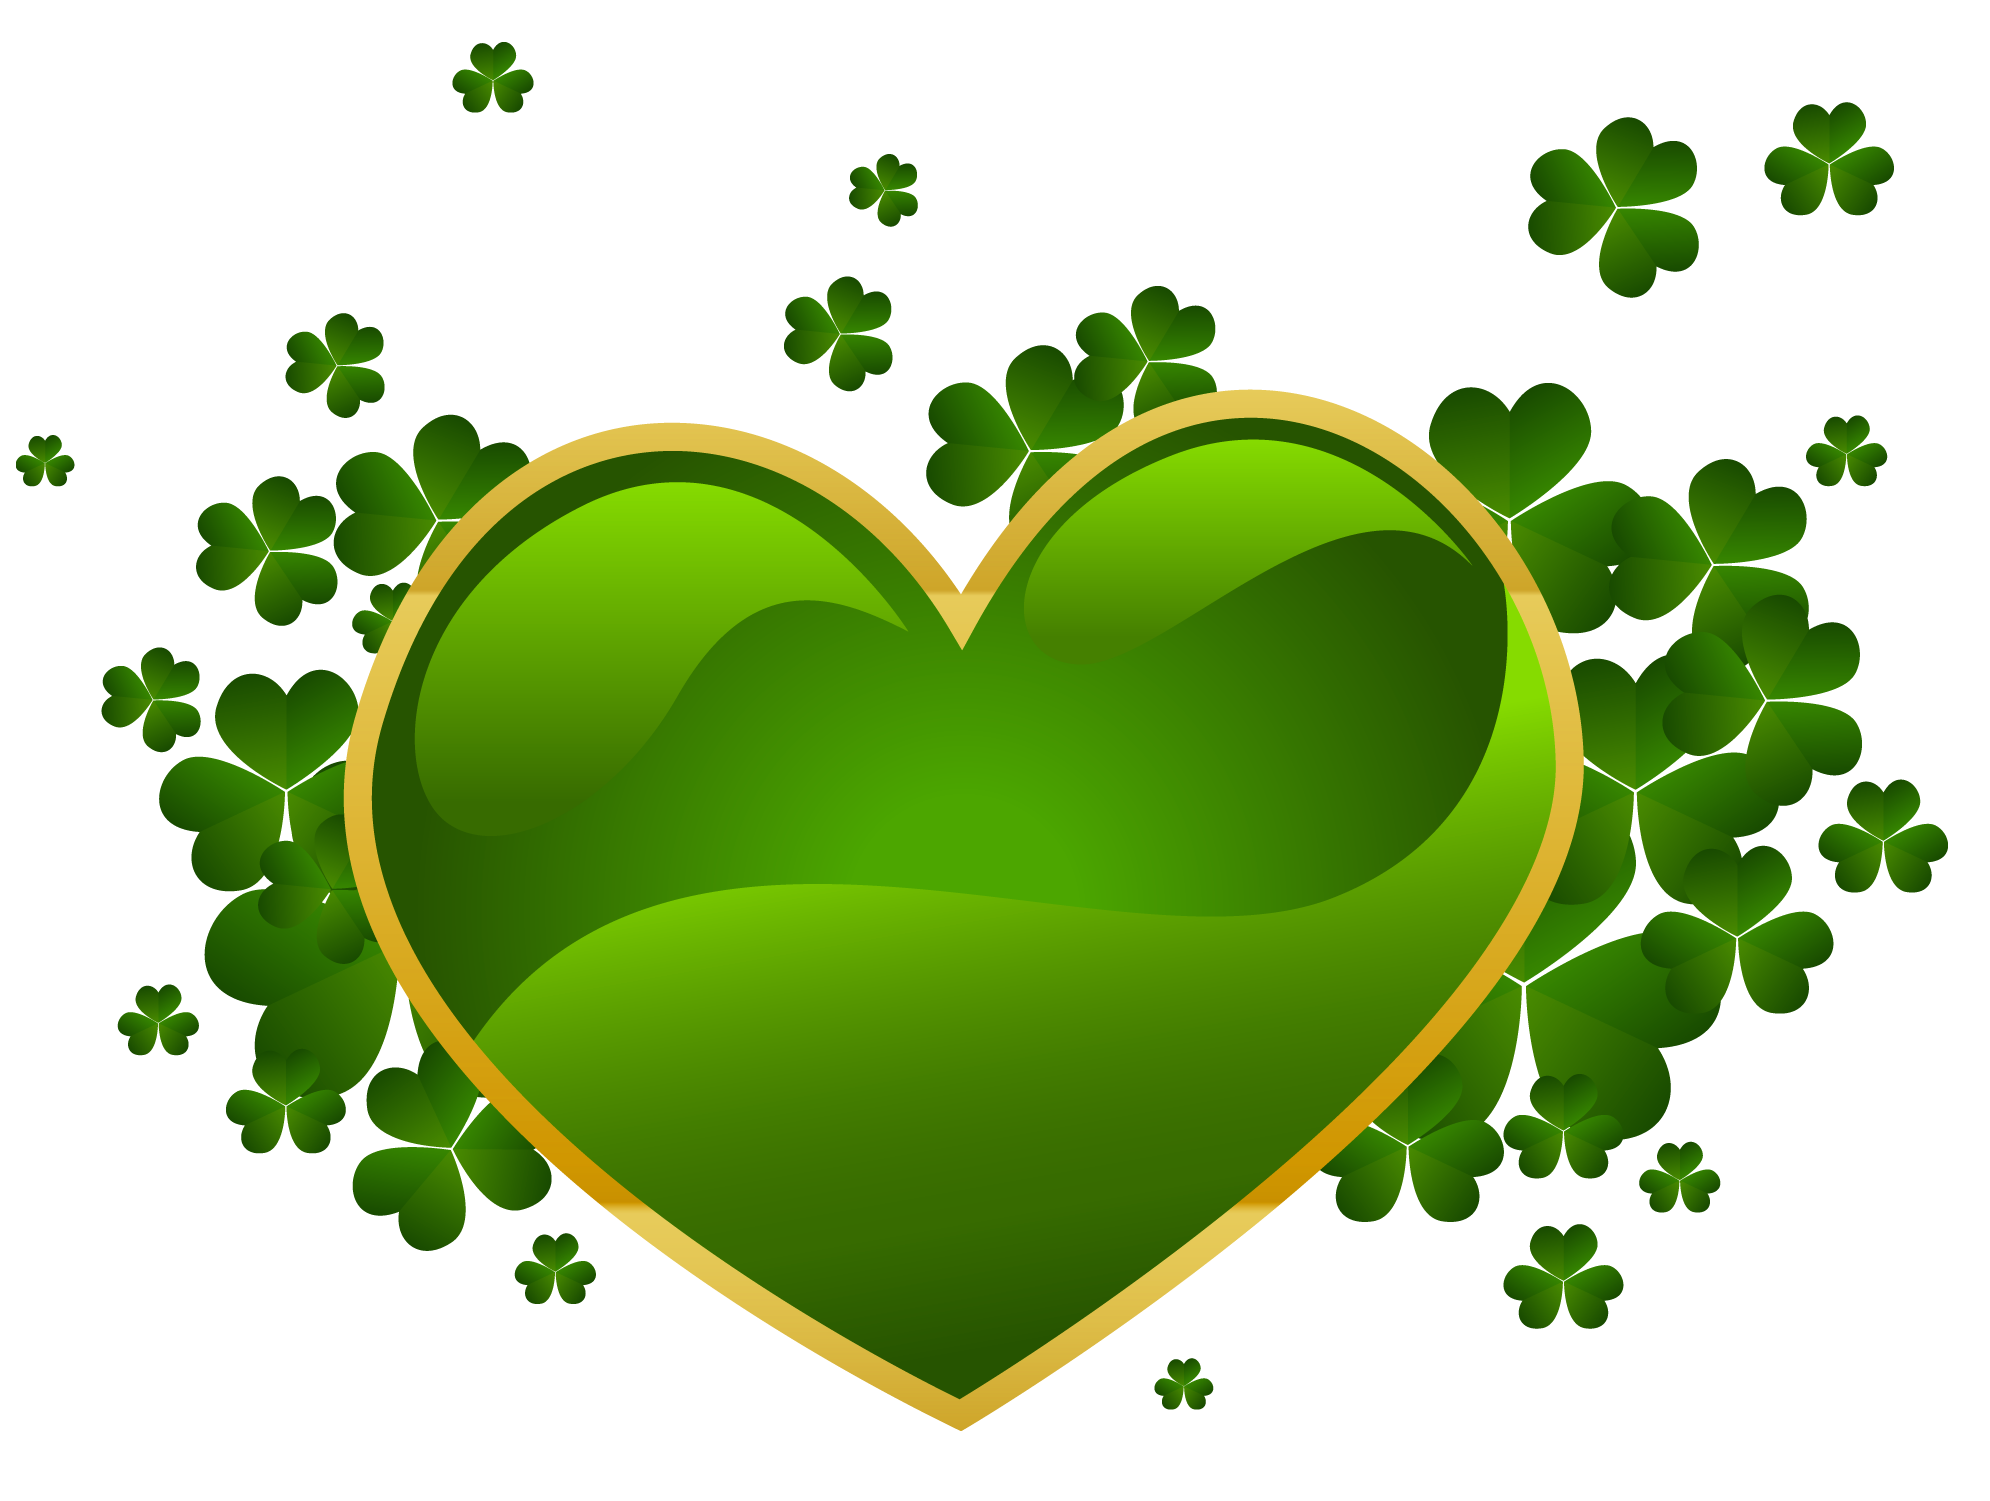 Leaf heart clipart vector library Public Domain Clip Art Shamrocks St Patricks Day Shamrock Clip Art 2 vector library